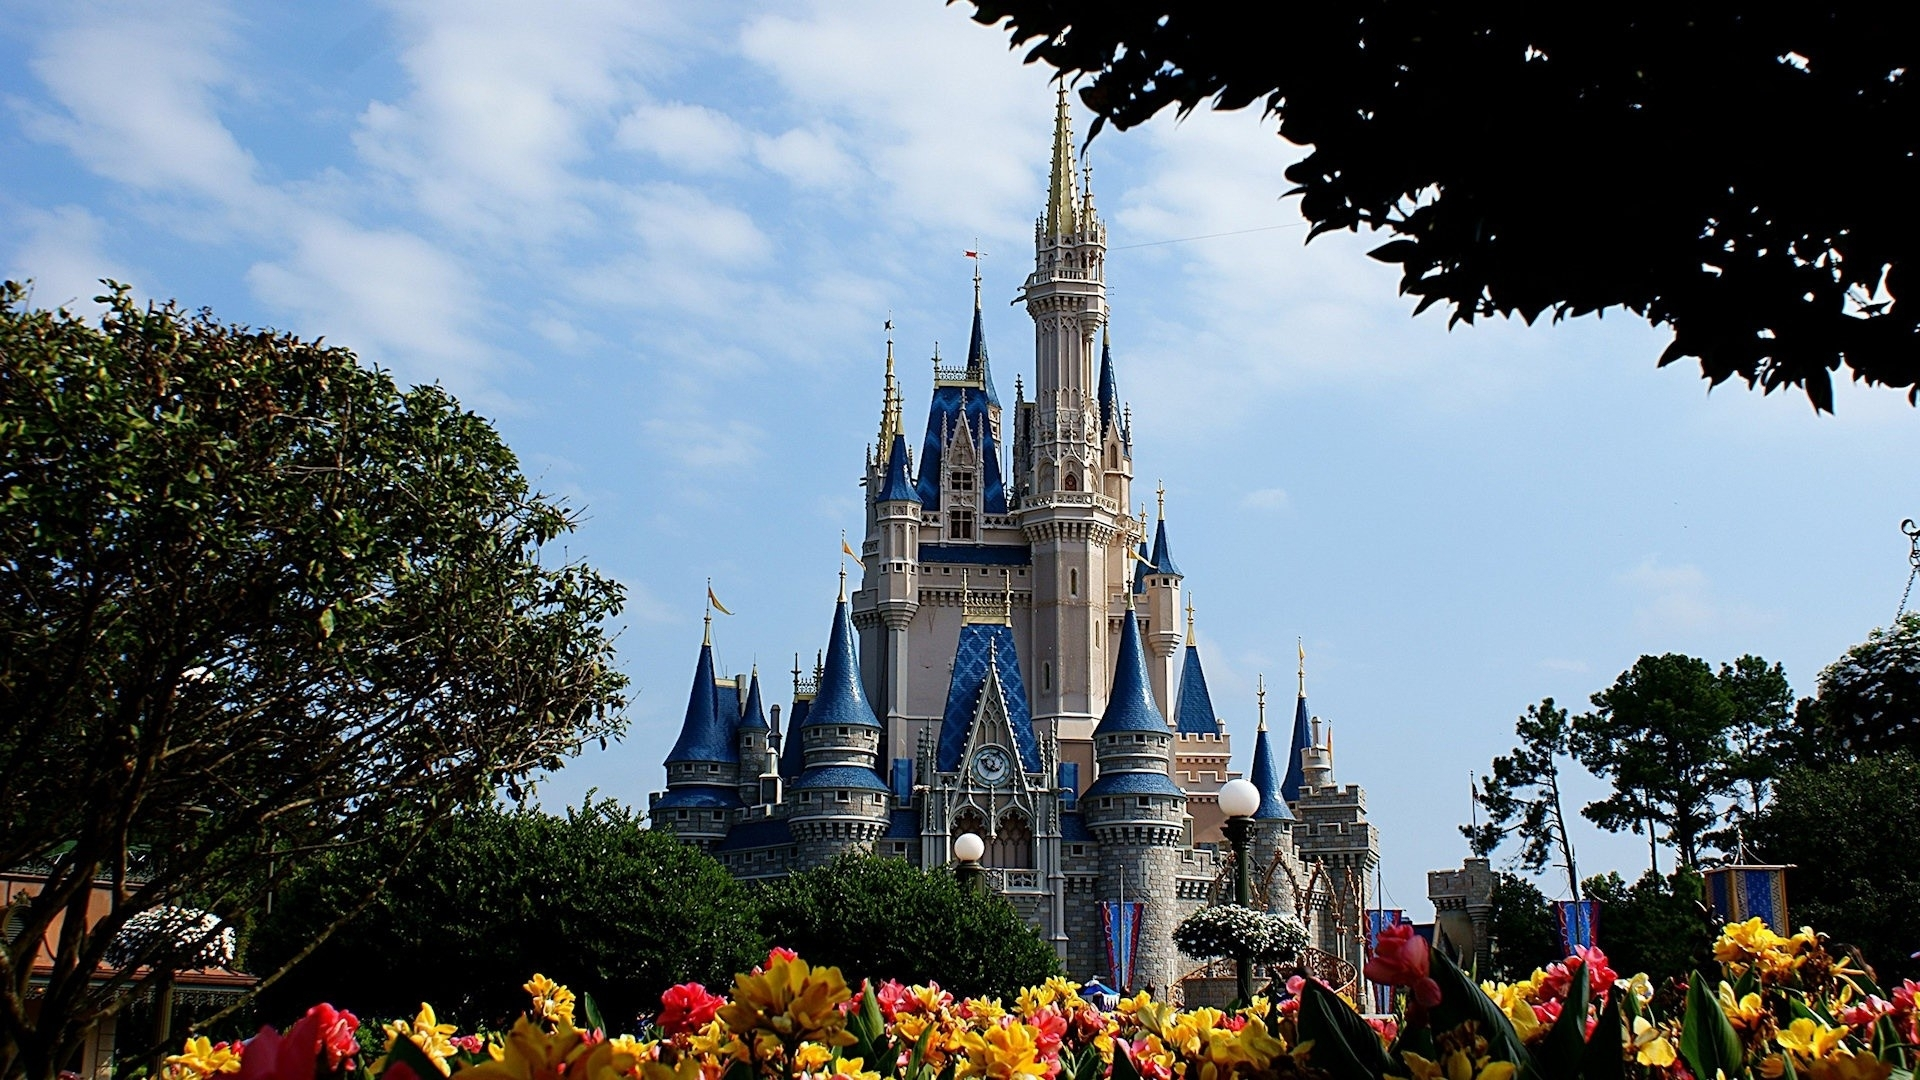 walt disney world hd wallpaper (71+ images)